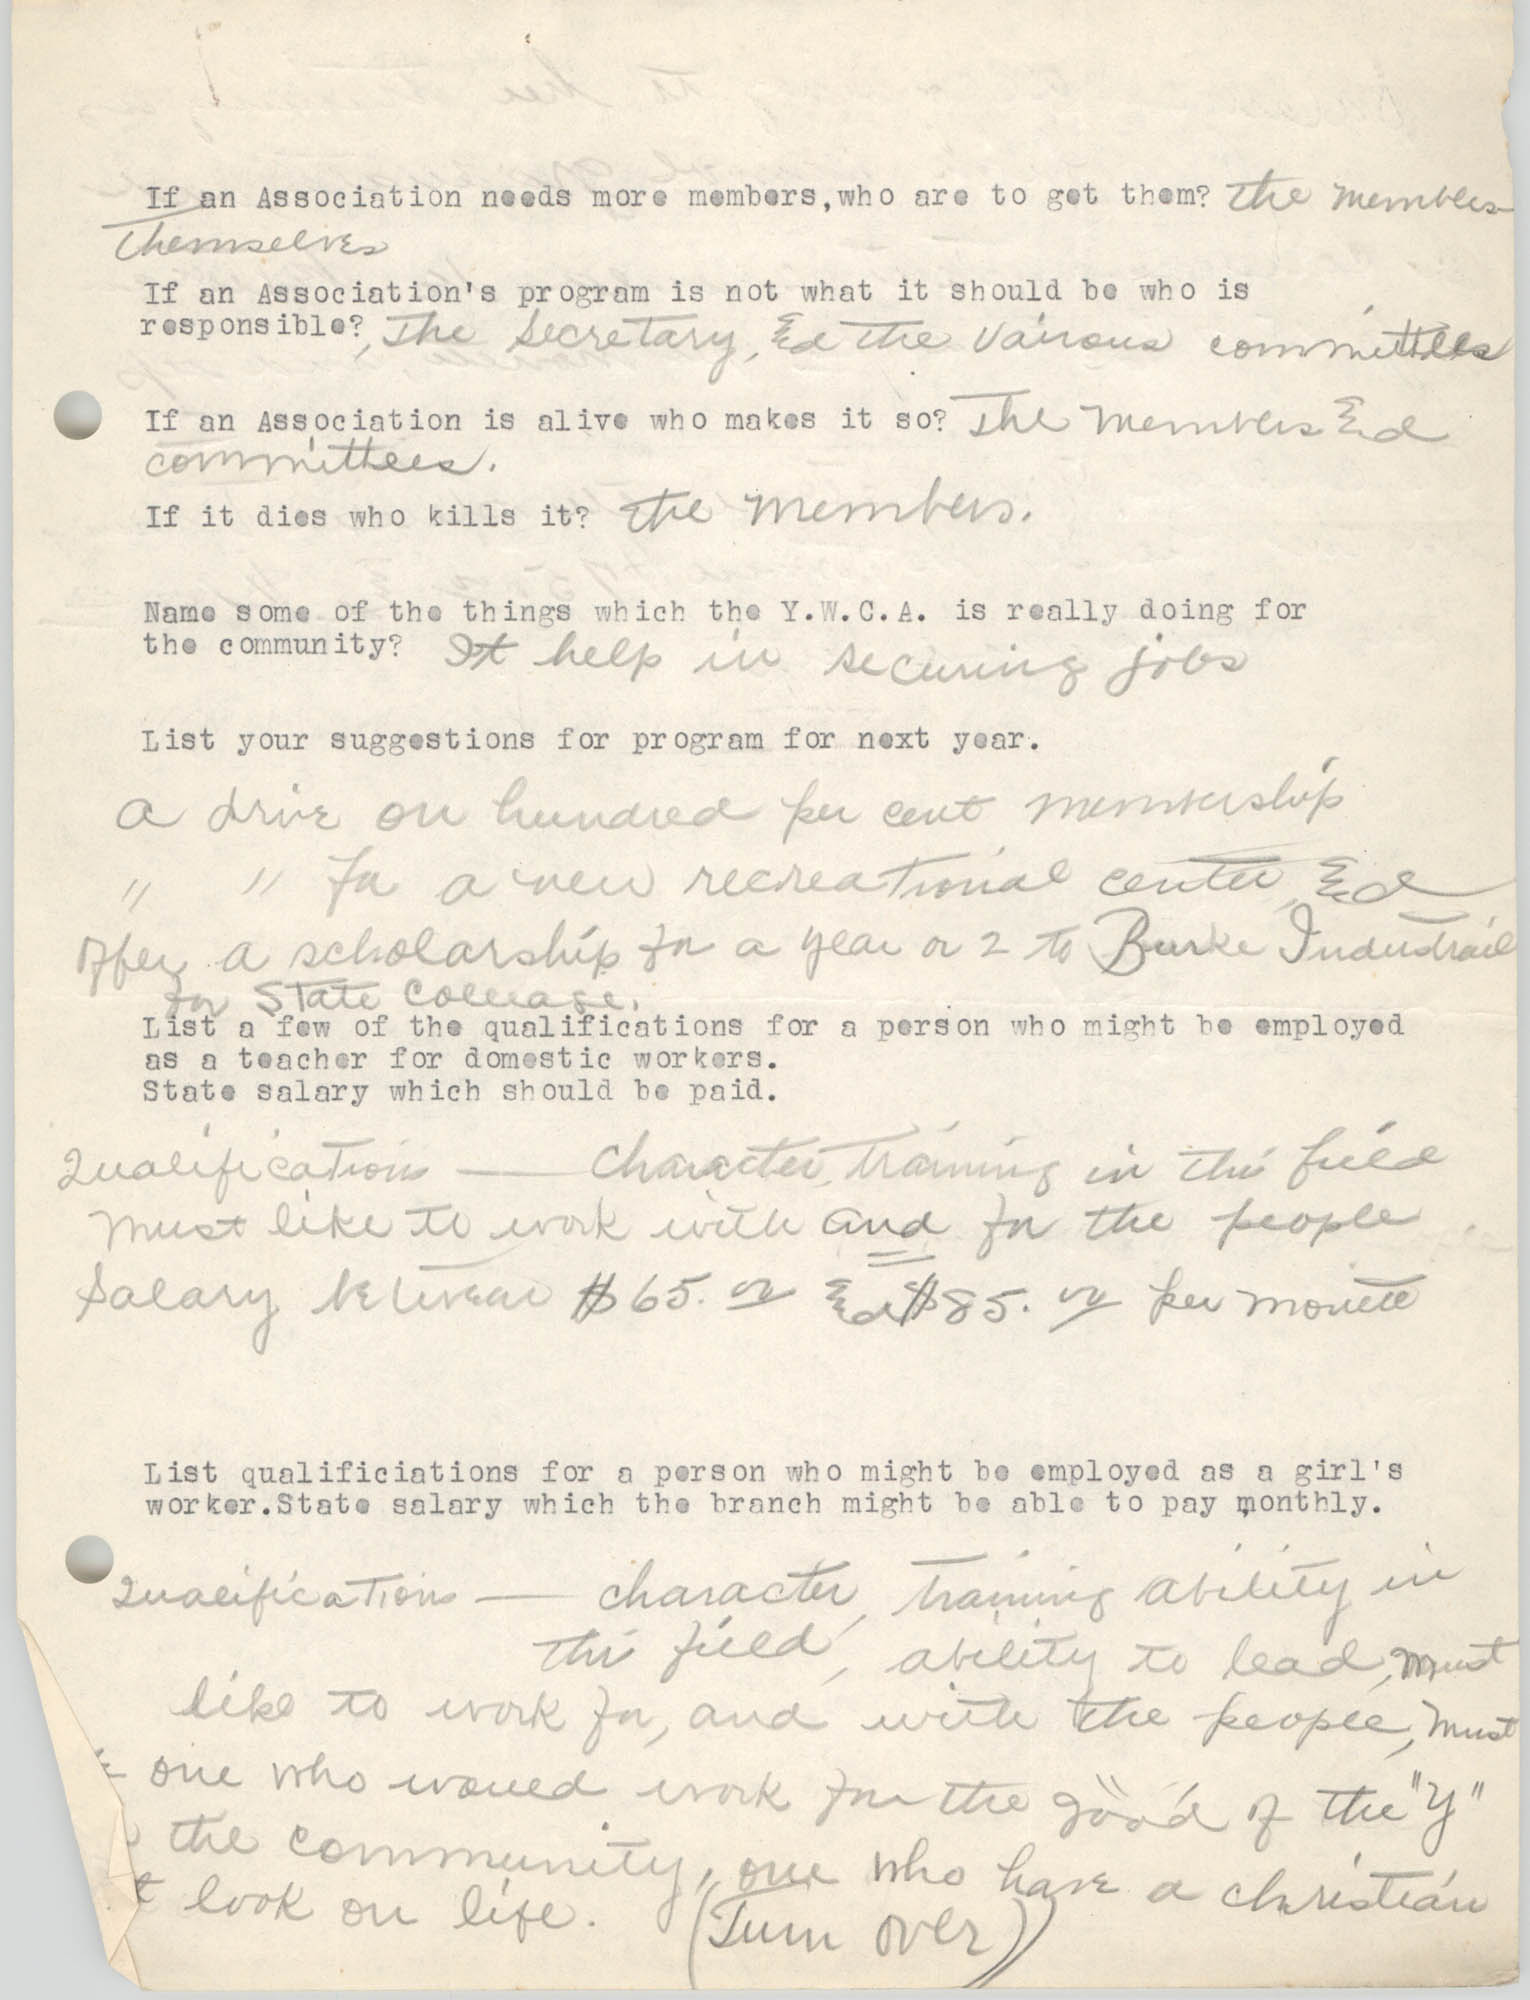 Coming Street Y.W.C.A., Completed Questionnaire Number 11, Page 2